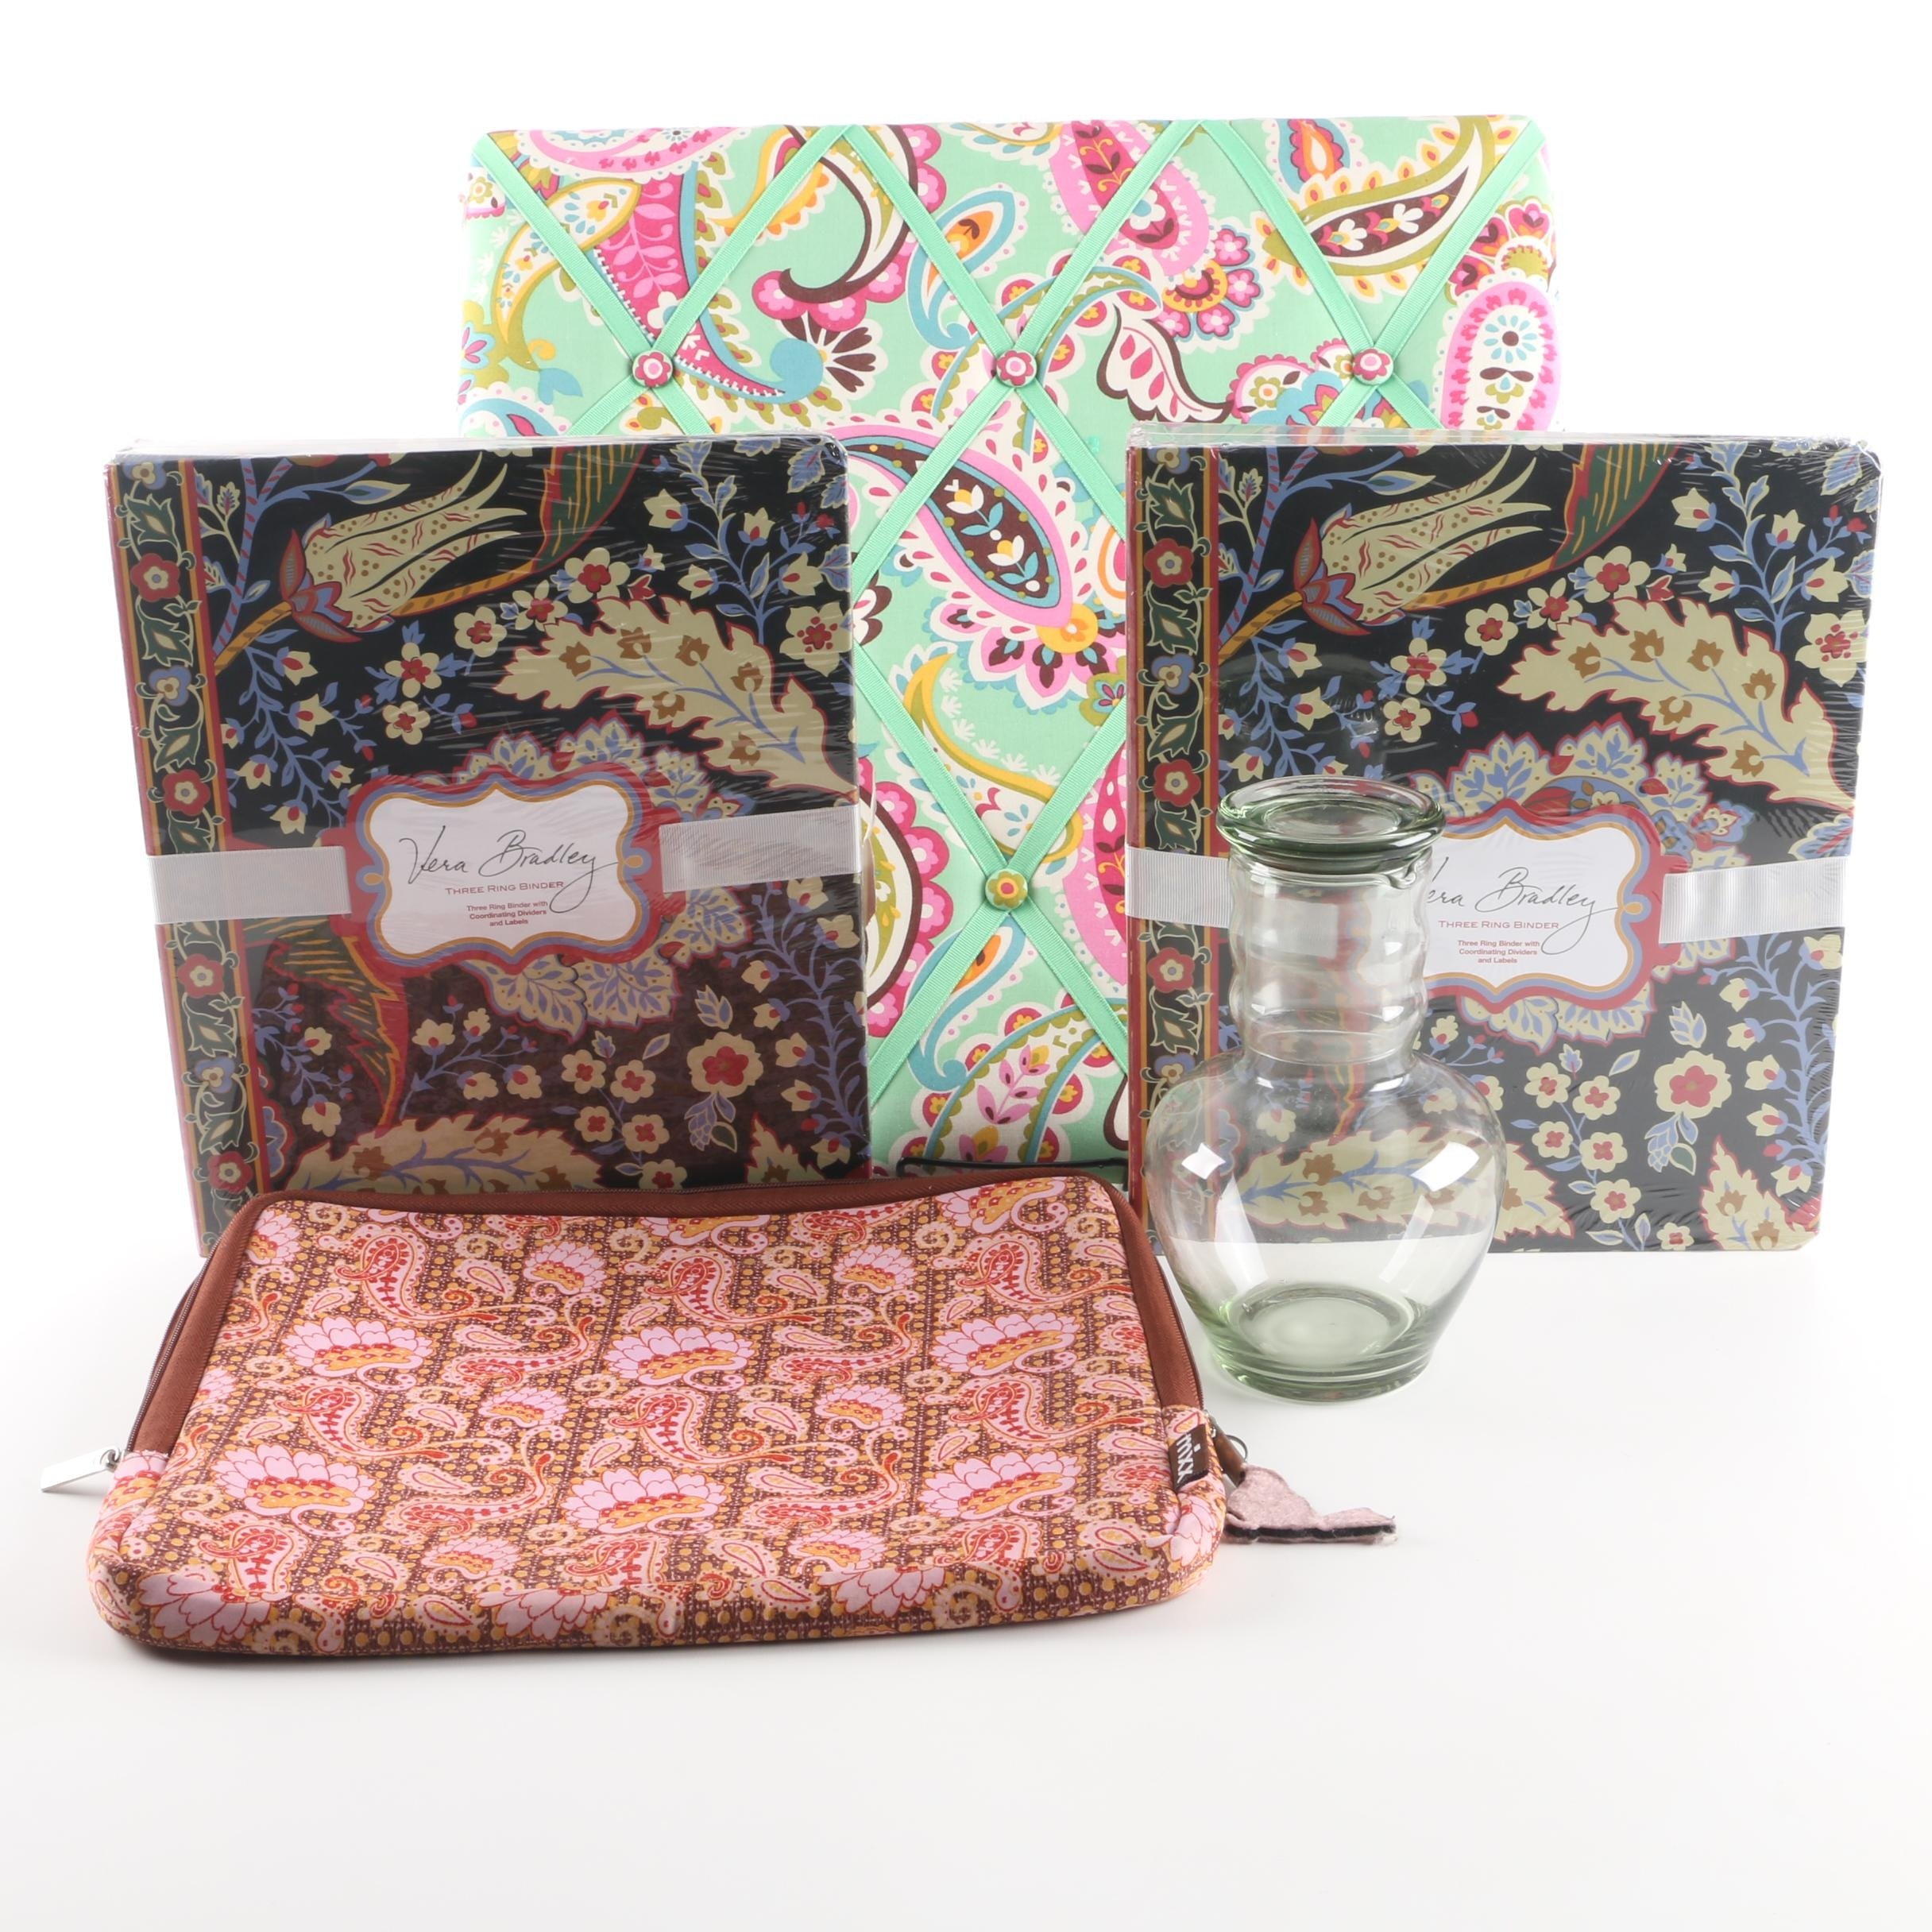 Paisley and Floral Print Office Accessories Including Vera Bradley